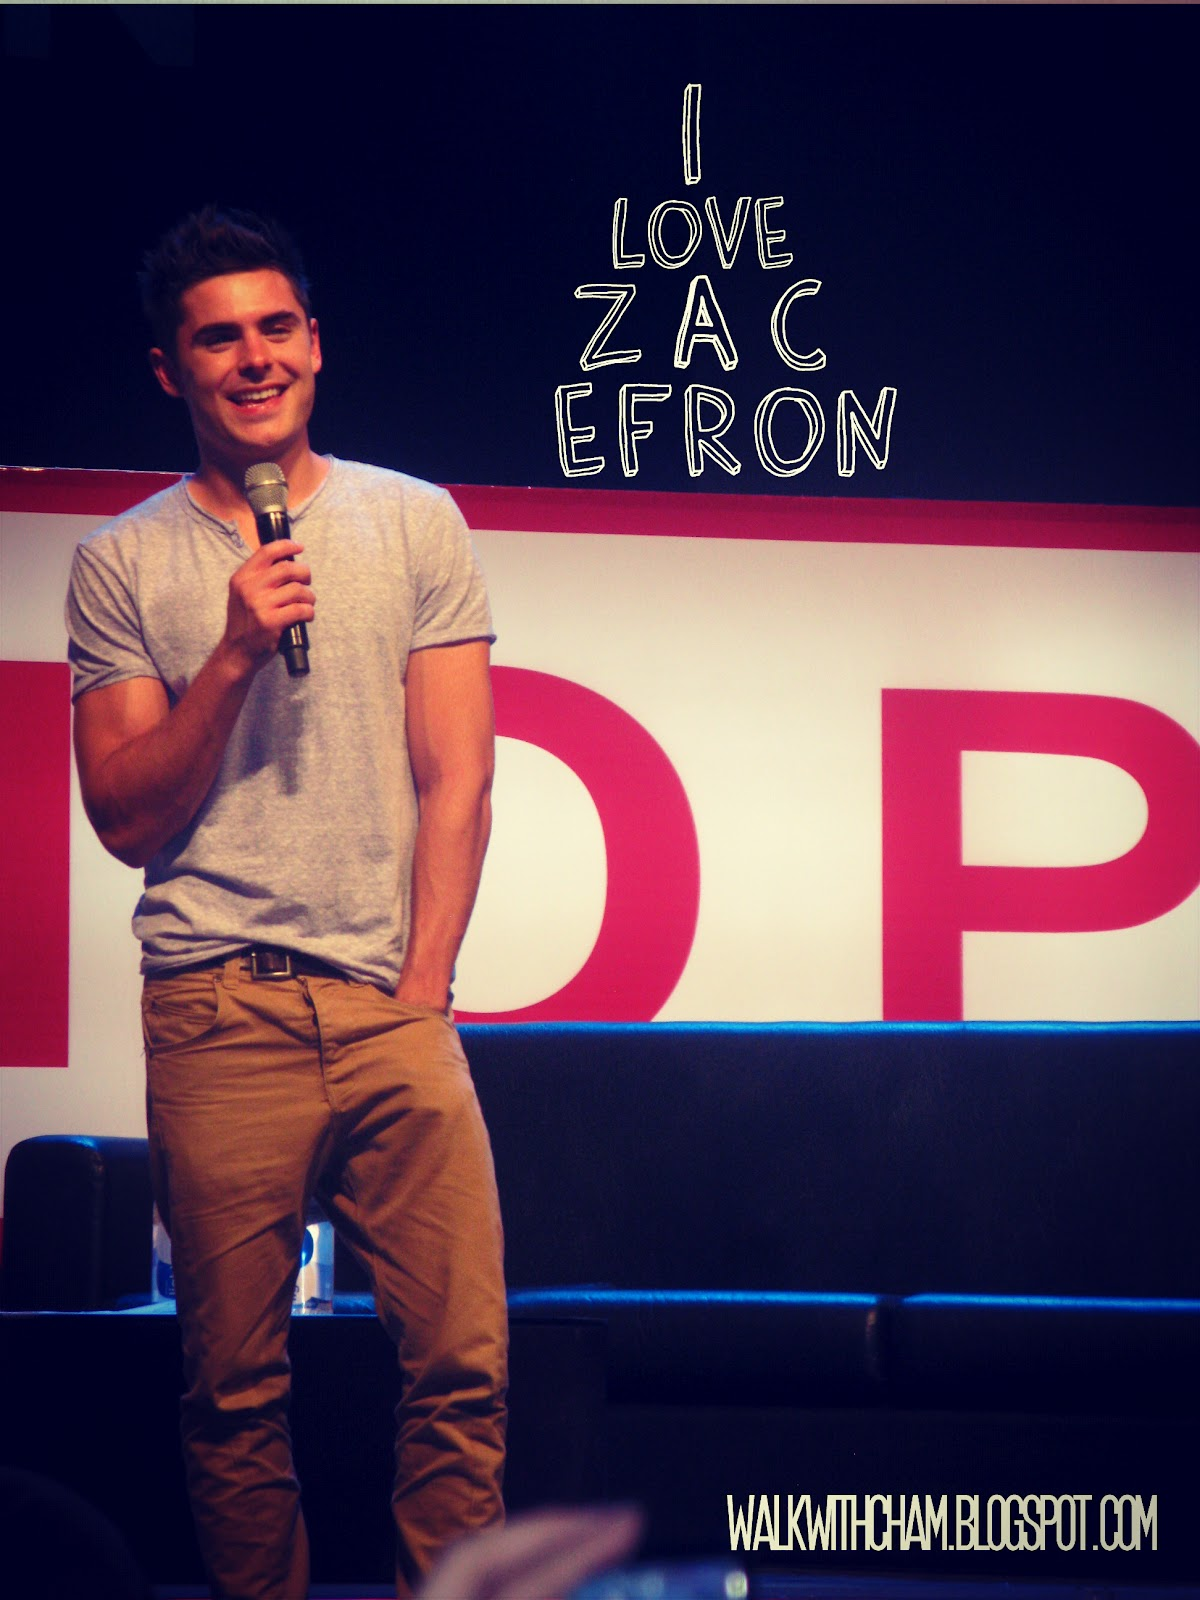 Walk with cham penshoppe fan conference starring zac efron penshoppe fan conference starring zac efron kristyandbryce Images